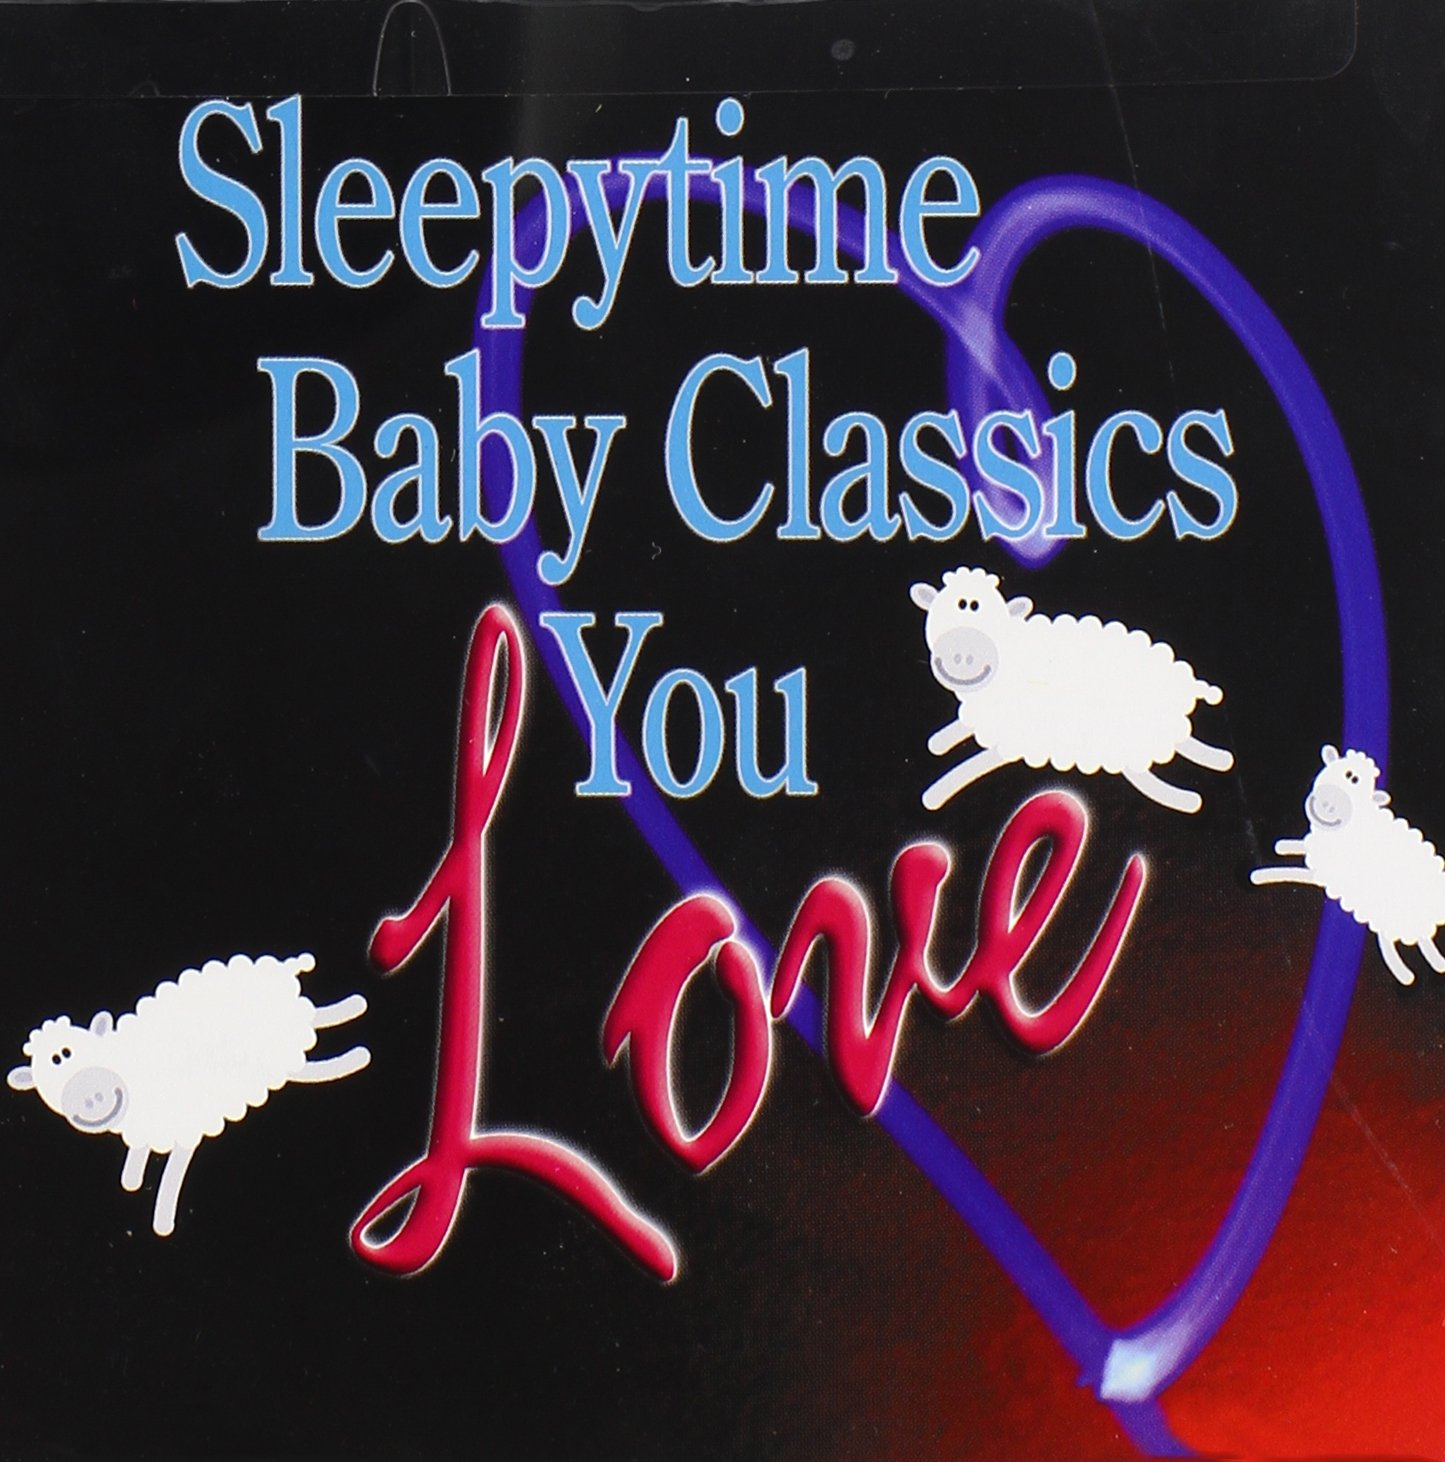 Sleepytime Baby Classics You Love